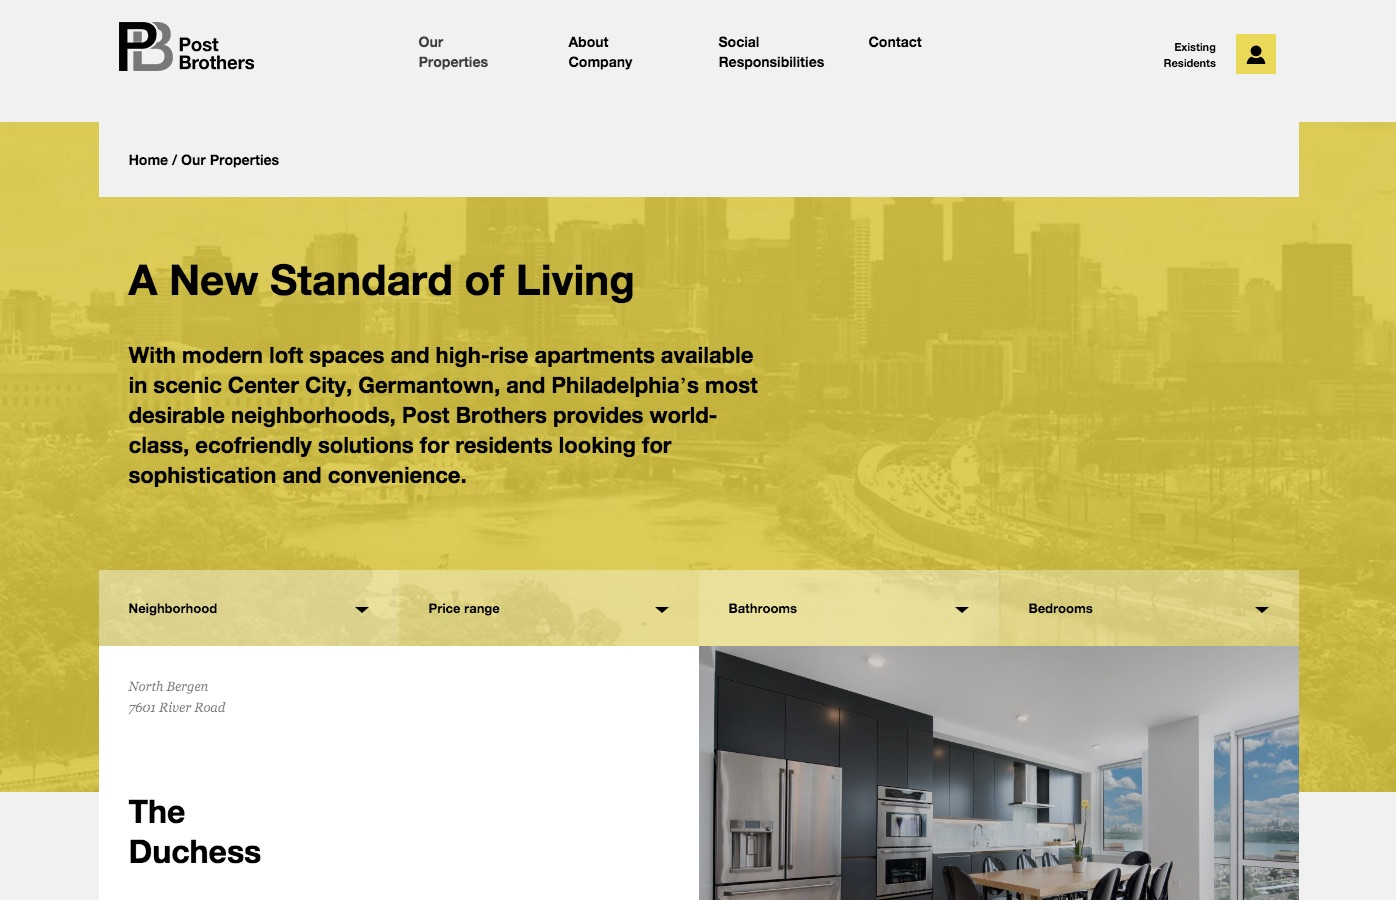 As For The Minimalist Look And Feel To The Site, The Gray, White And Yellow  Colors Are A Perfect Combination To Make The Actual House And Rental  Property ...